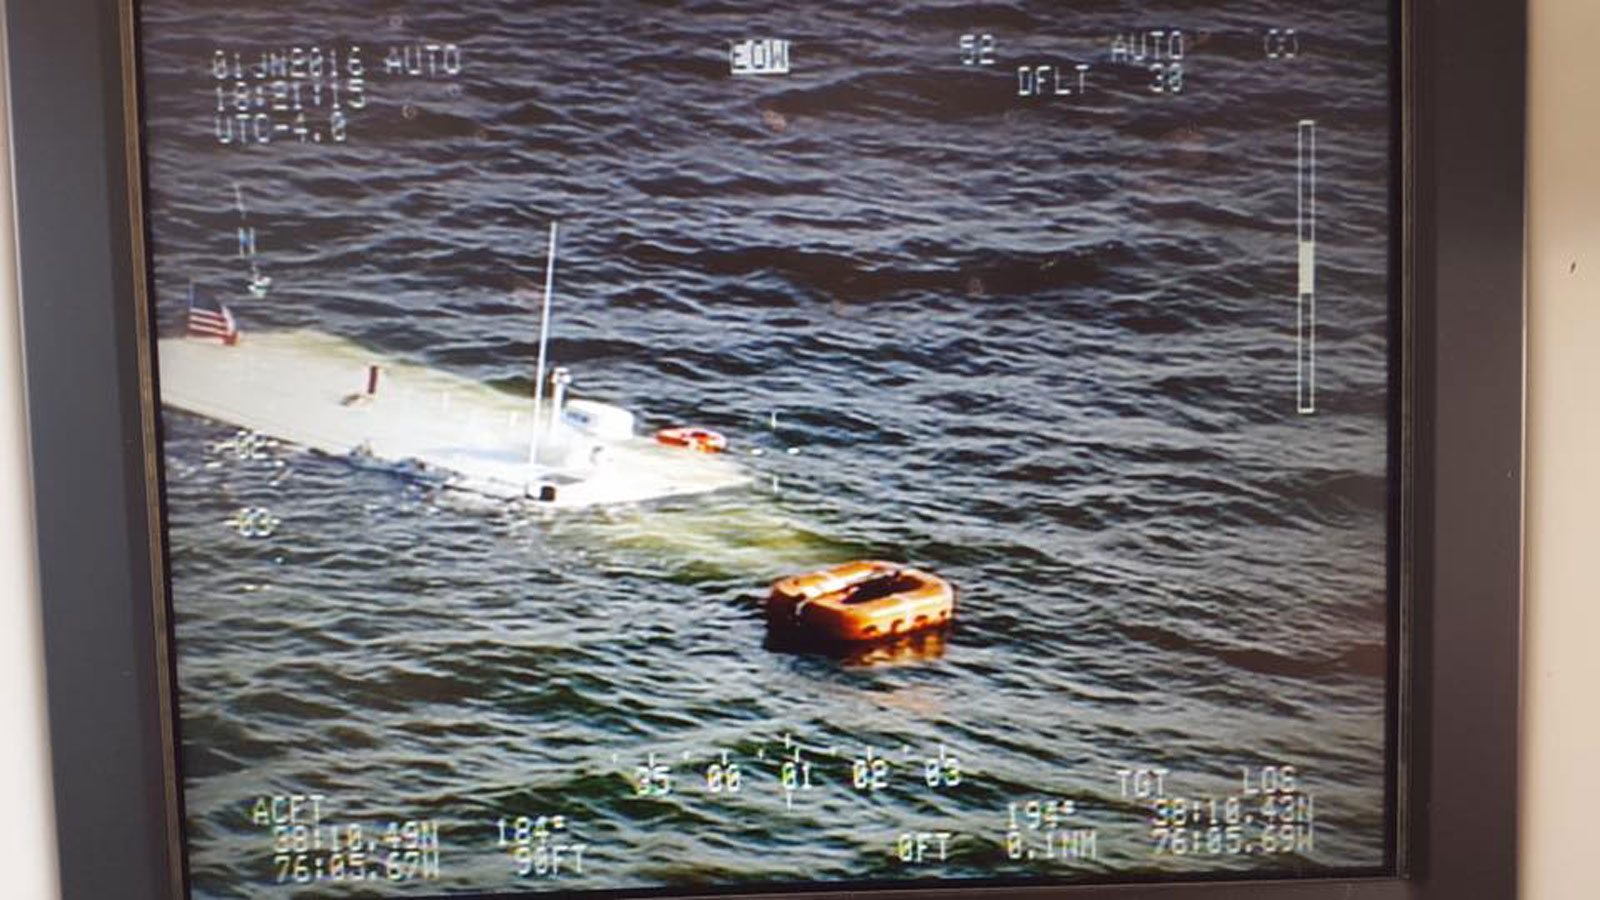 Fisherman rescues boat passengers, mostly children, from Chesapeake Bay